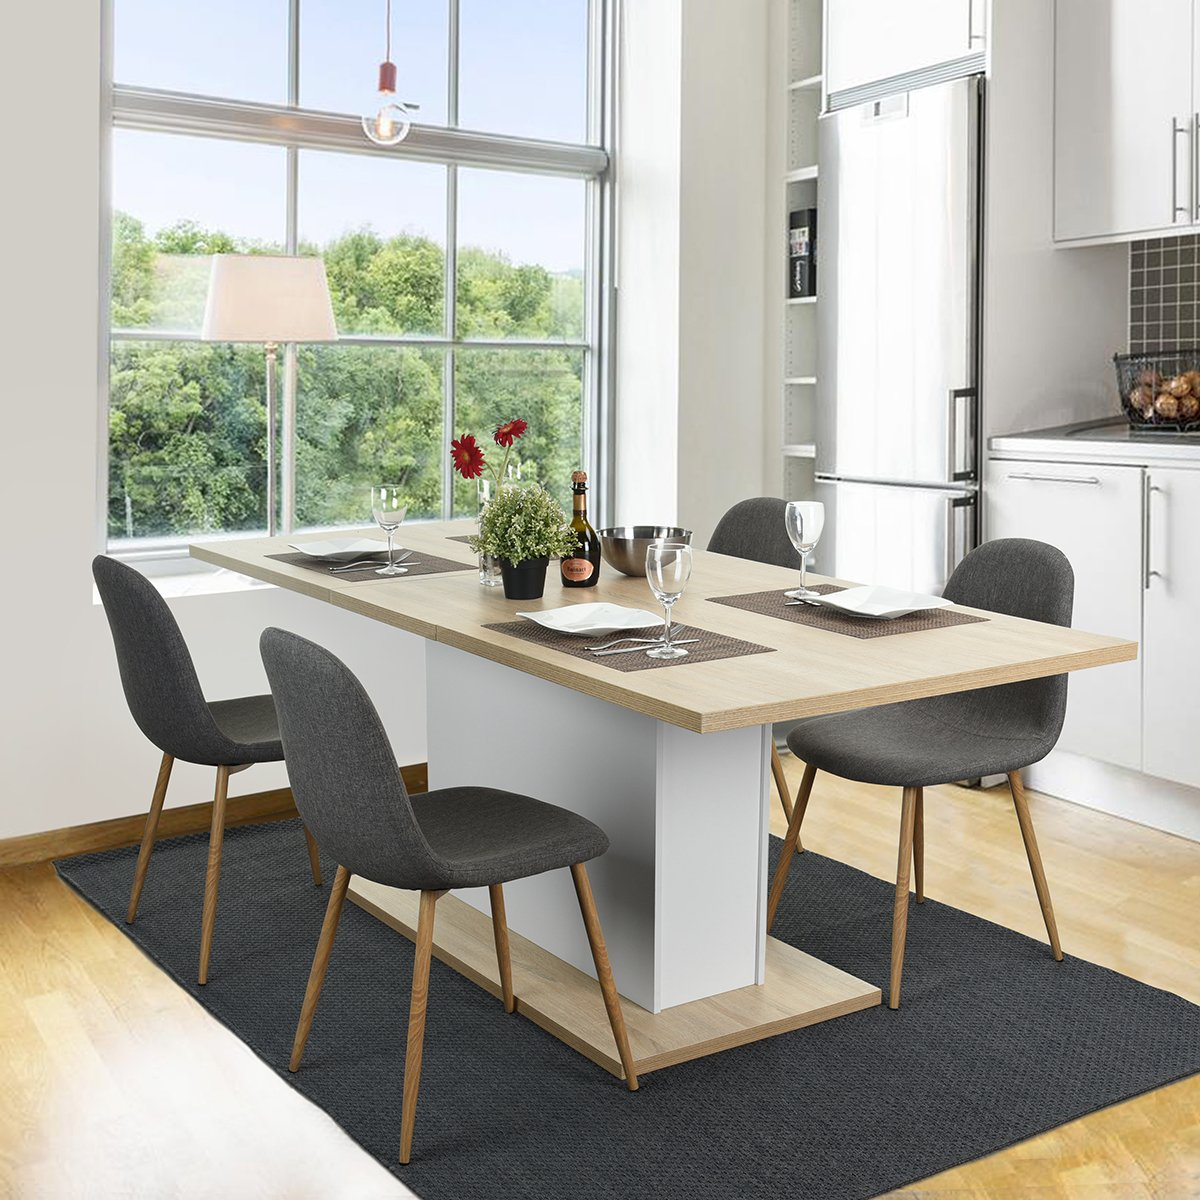 Homycasa Dining Chair Set Of 4 Style Fabric Stable Chairs With Metal Legs Kitchen Room GREY Amazonca Home